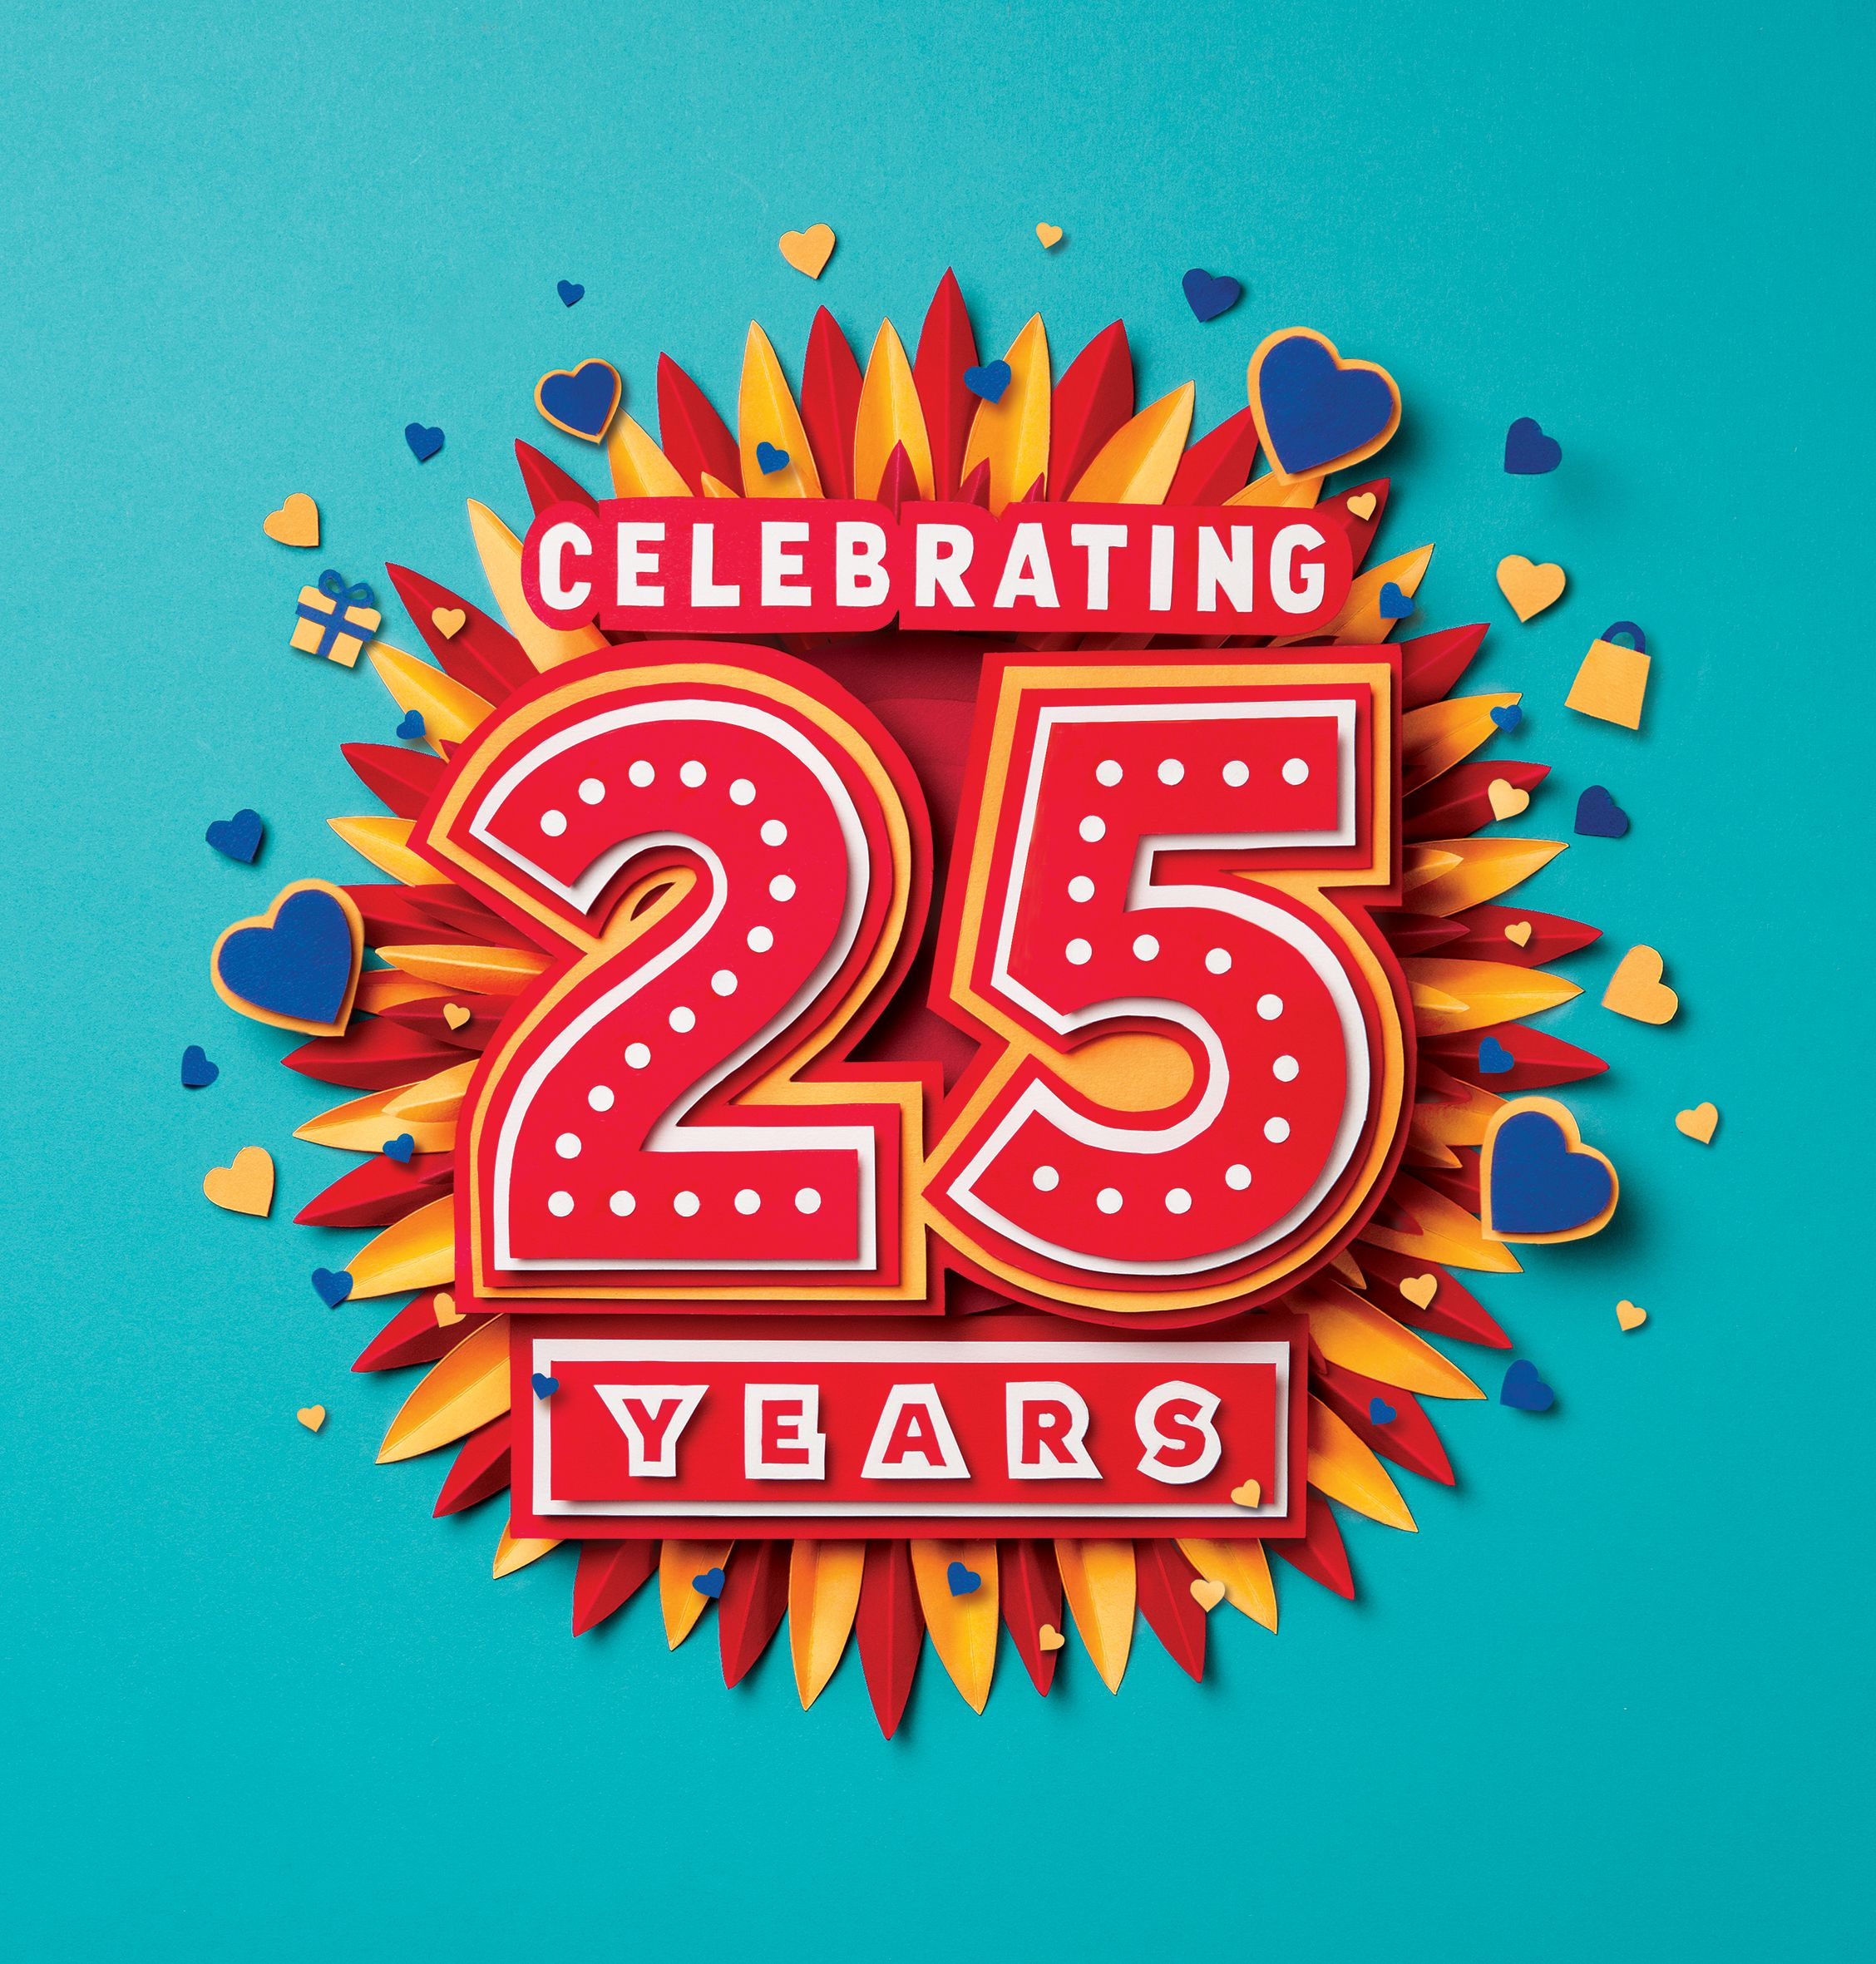 Meadowhall 25 Years Poster Design Paper Artwork Design